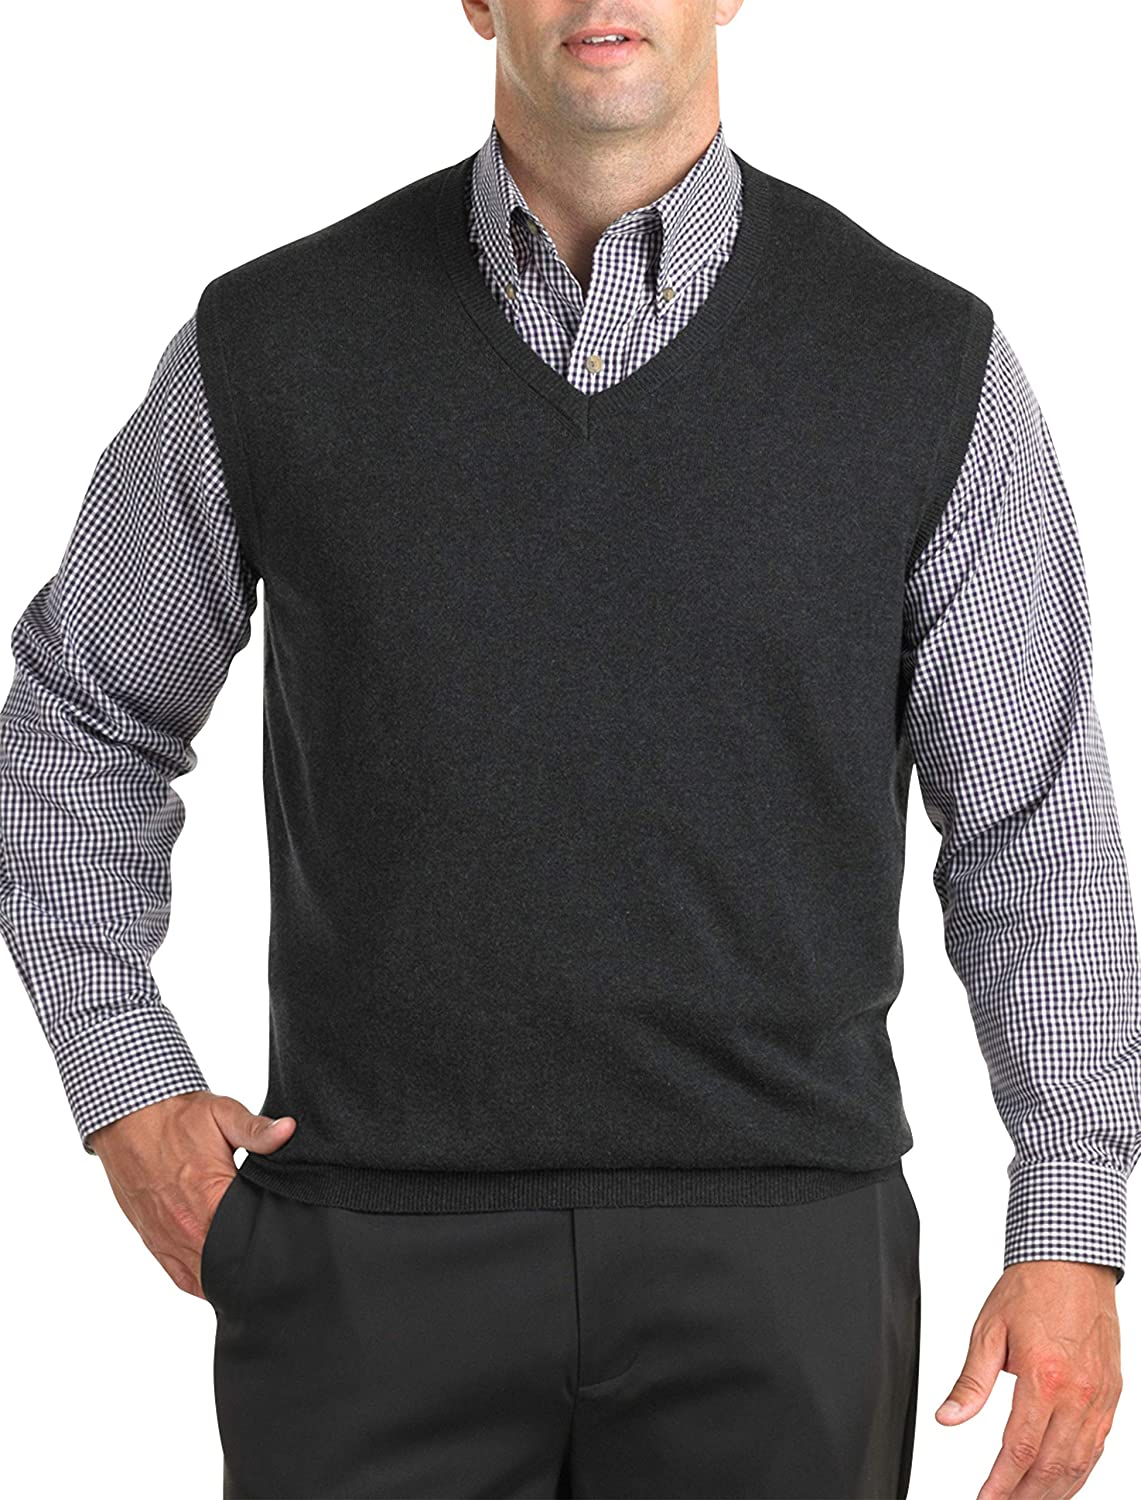 Harbor Bay by DXL Big and Tall V-Neck Sweater Vest